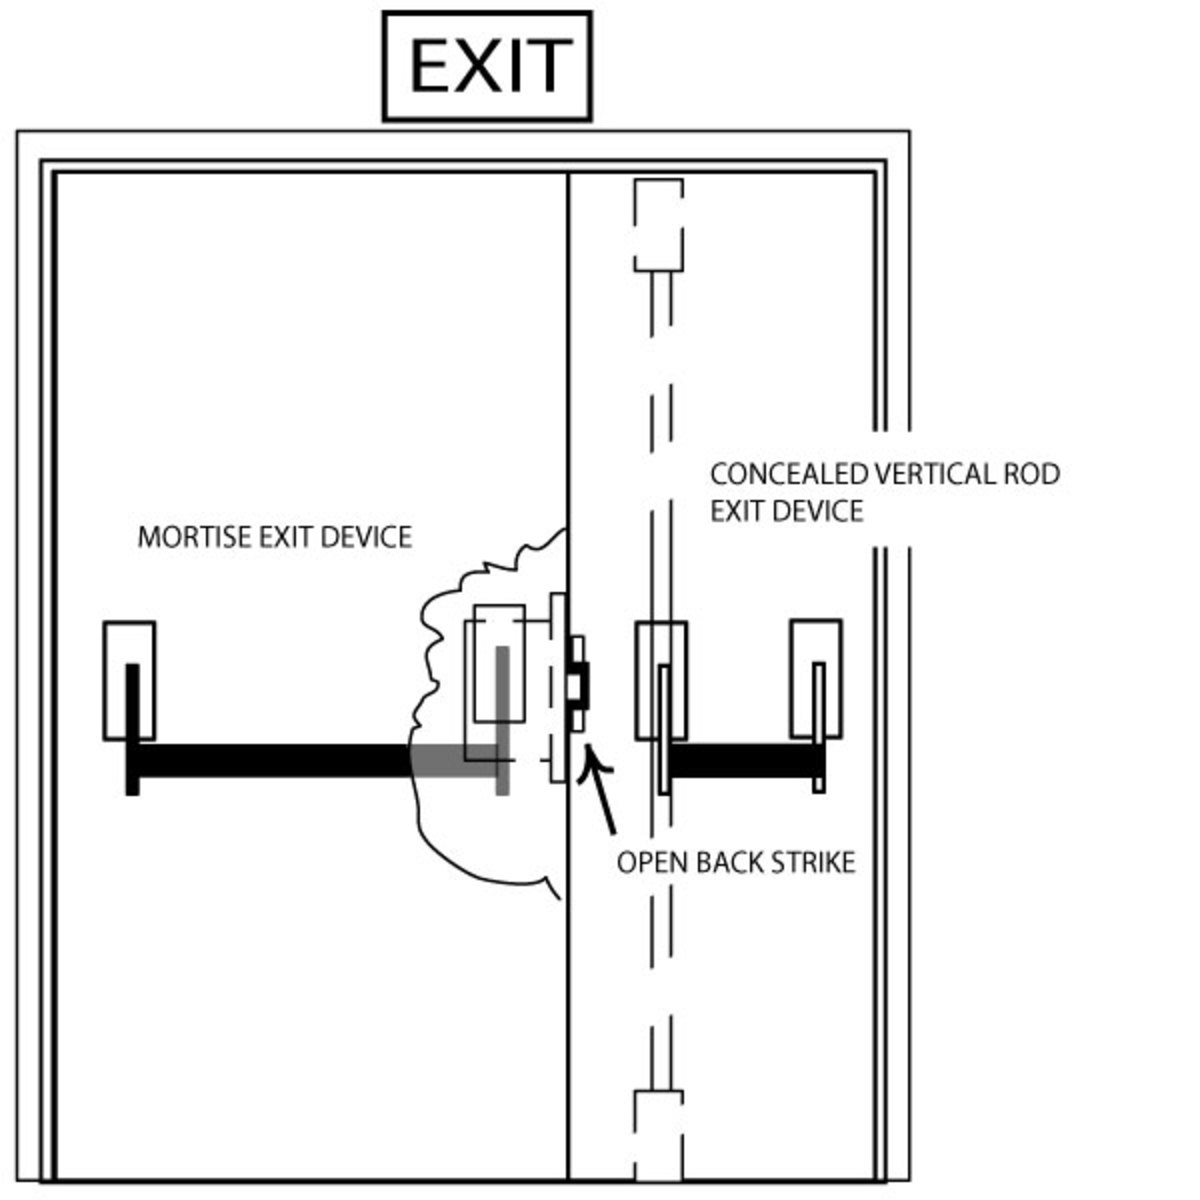 Fig. 1 - Mortise Crossbar Exit Device and Concealed Vertical Rod Exit Device on Uneven Pair of Doors